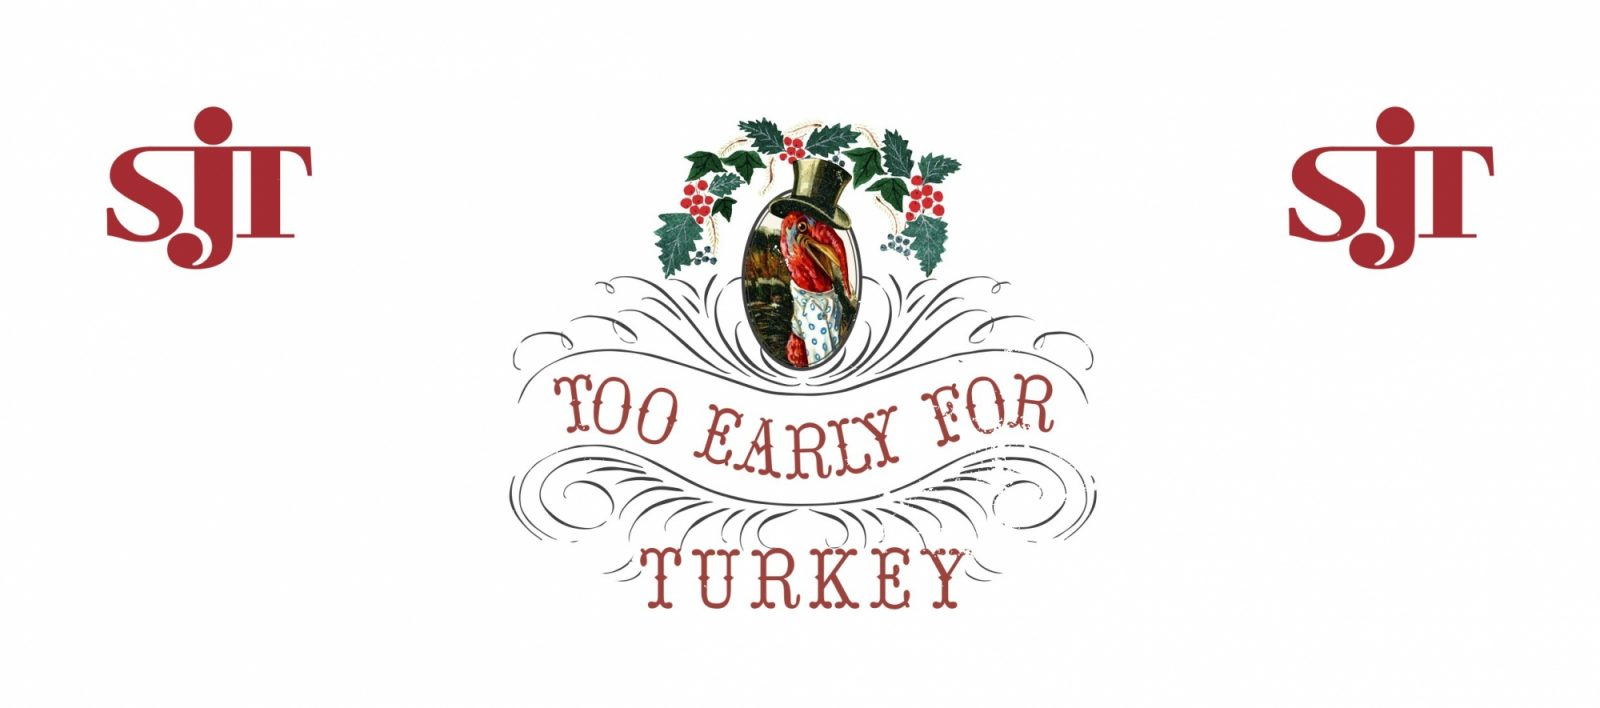 Too Early For Turkey